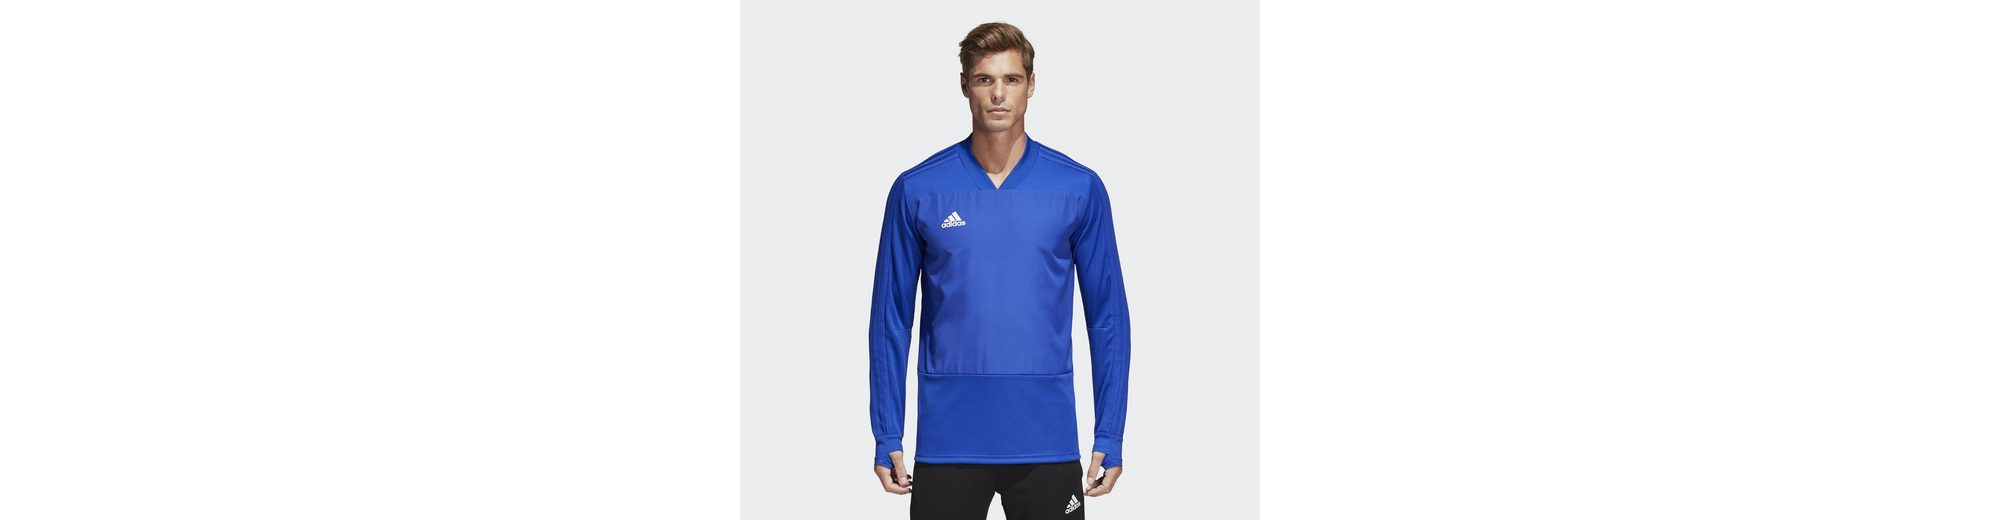 Adidas Player 18 Sporttop Performance Condivo 0aqrw0S